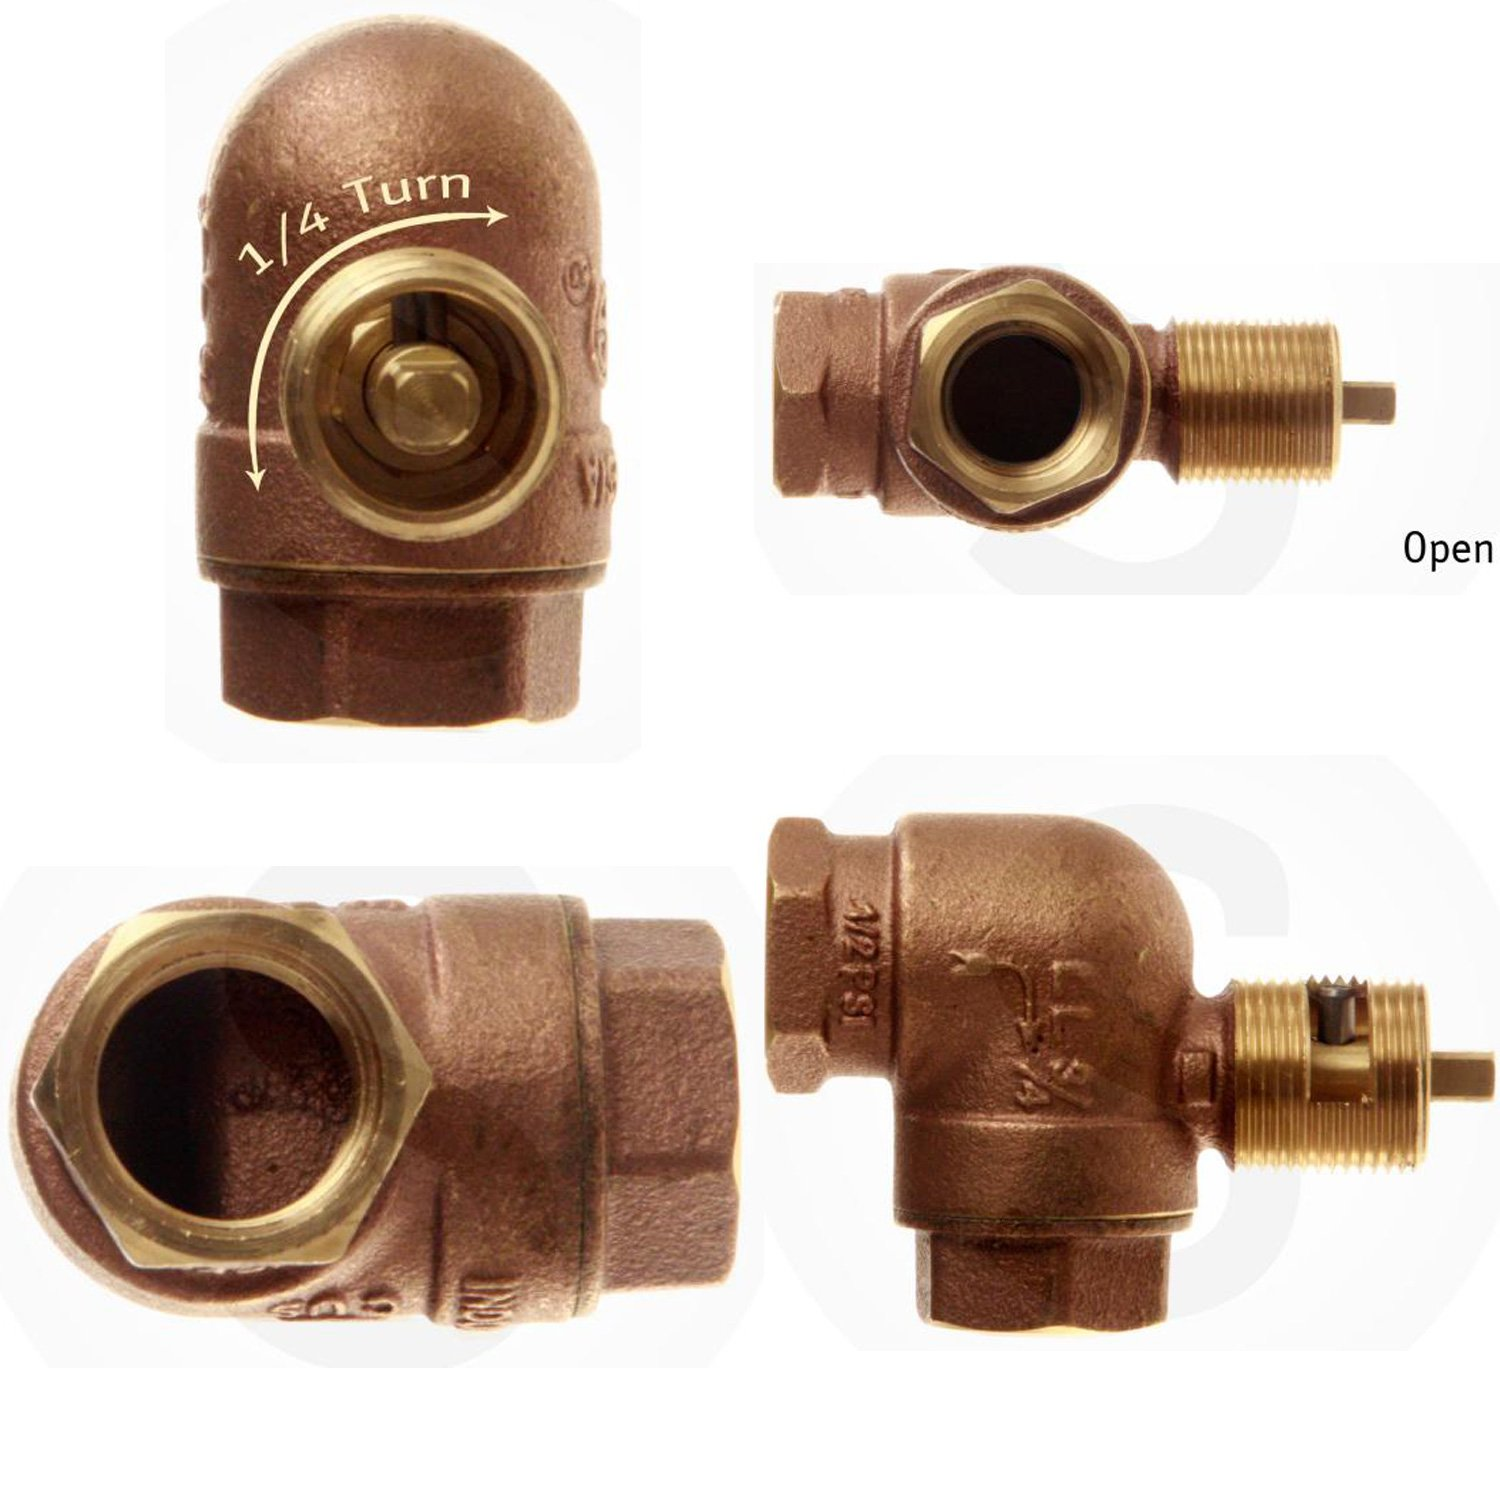 Hearth Products Controls HPC 3/4-Inch Angled Gas Fire Pit Shut Off Valve Kit (MAAB-HC), Antique Brass Flange and Key